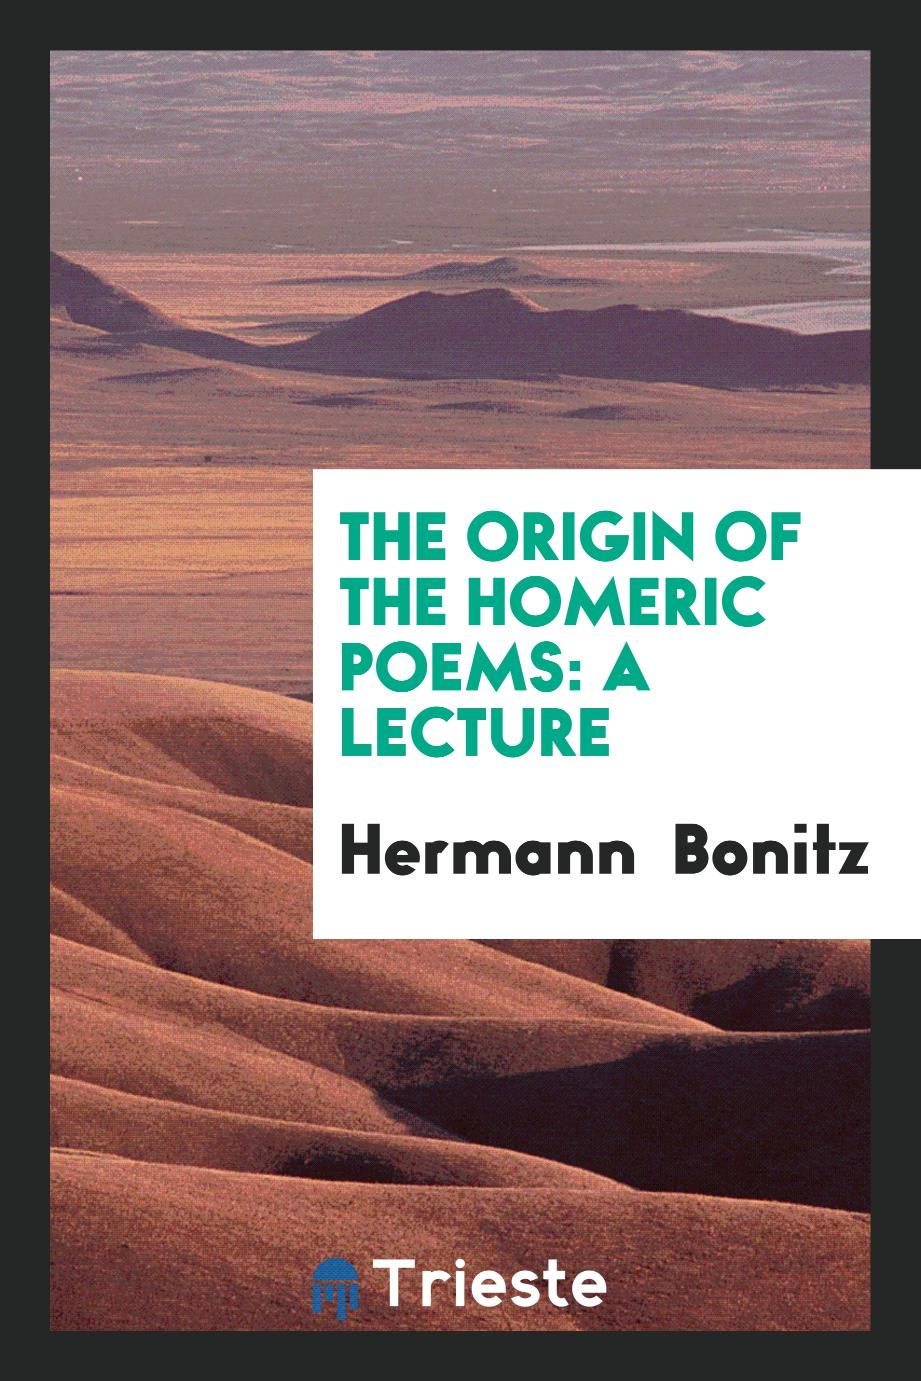 The Origin of the Homeric Poems: A Lecture